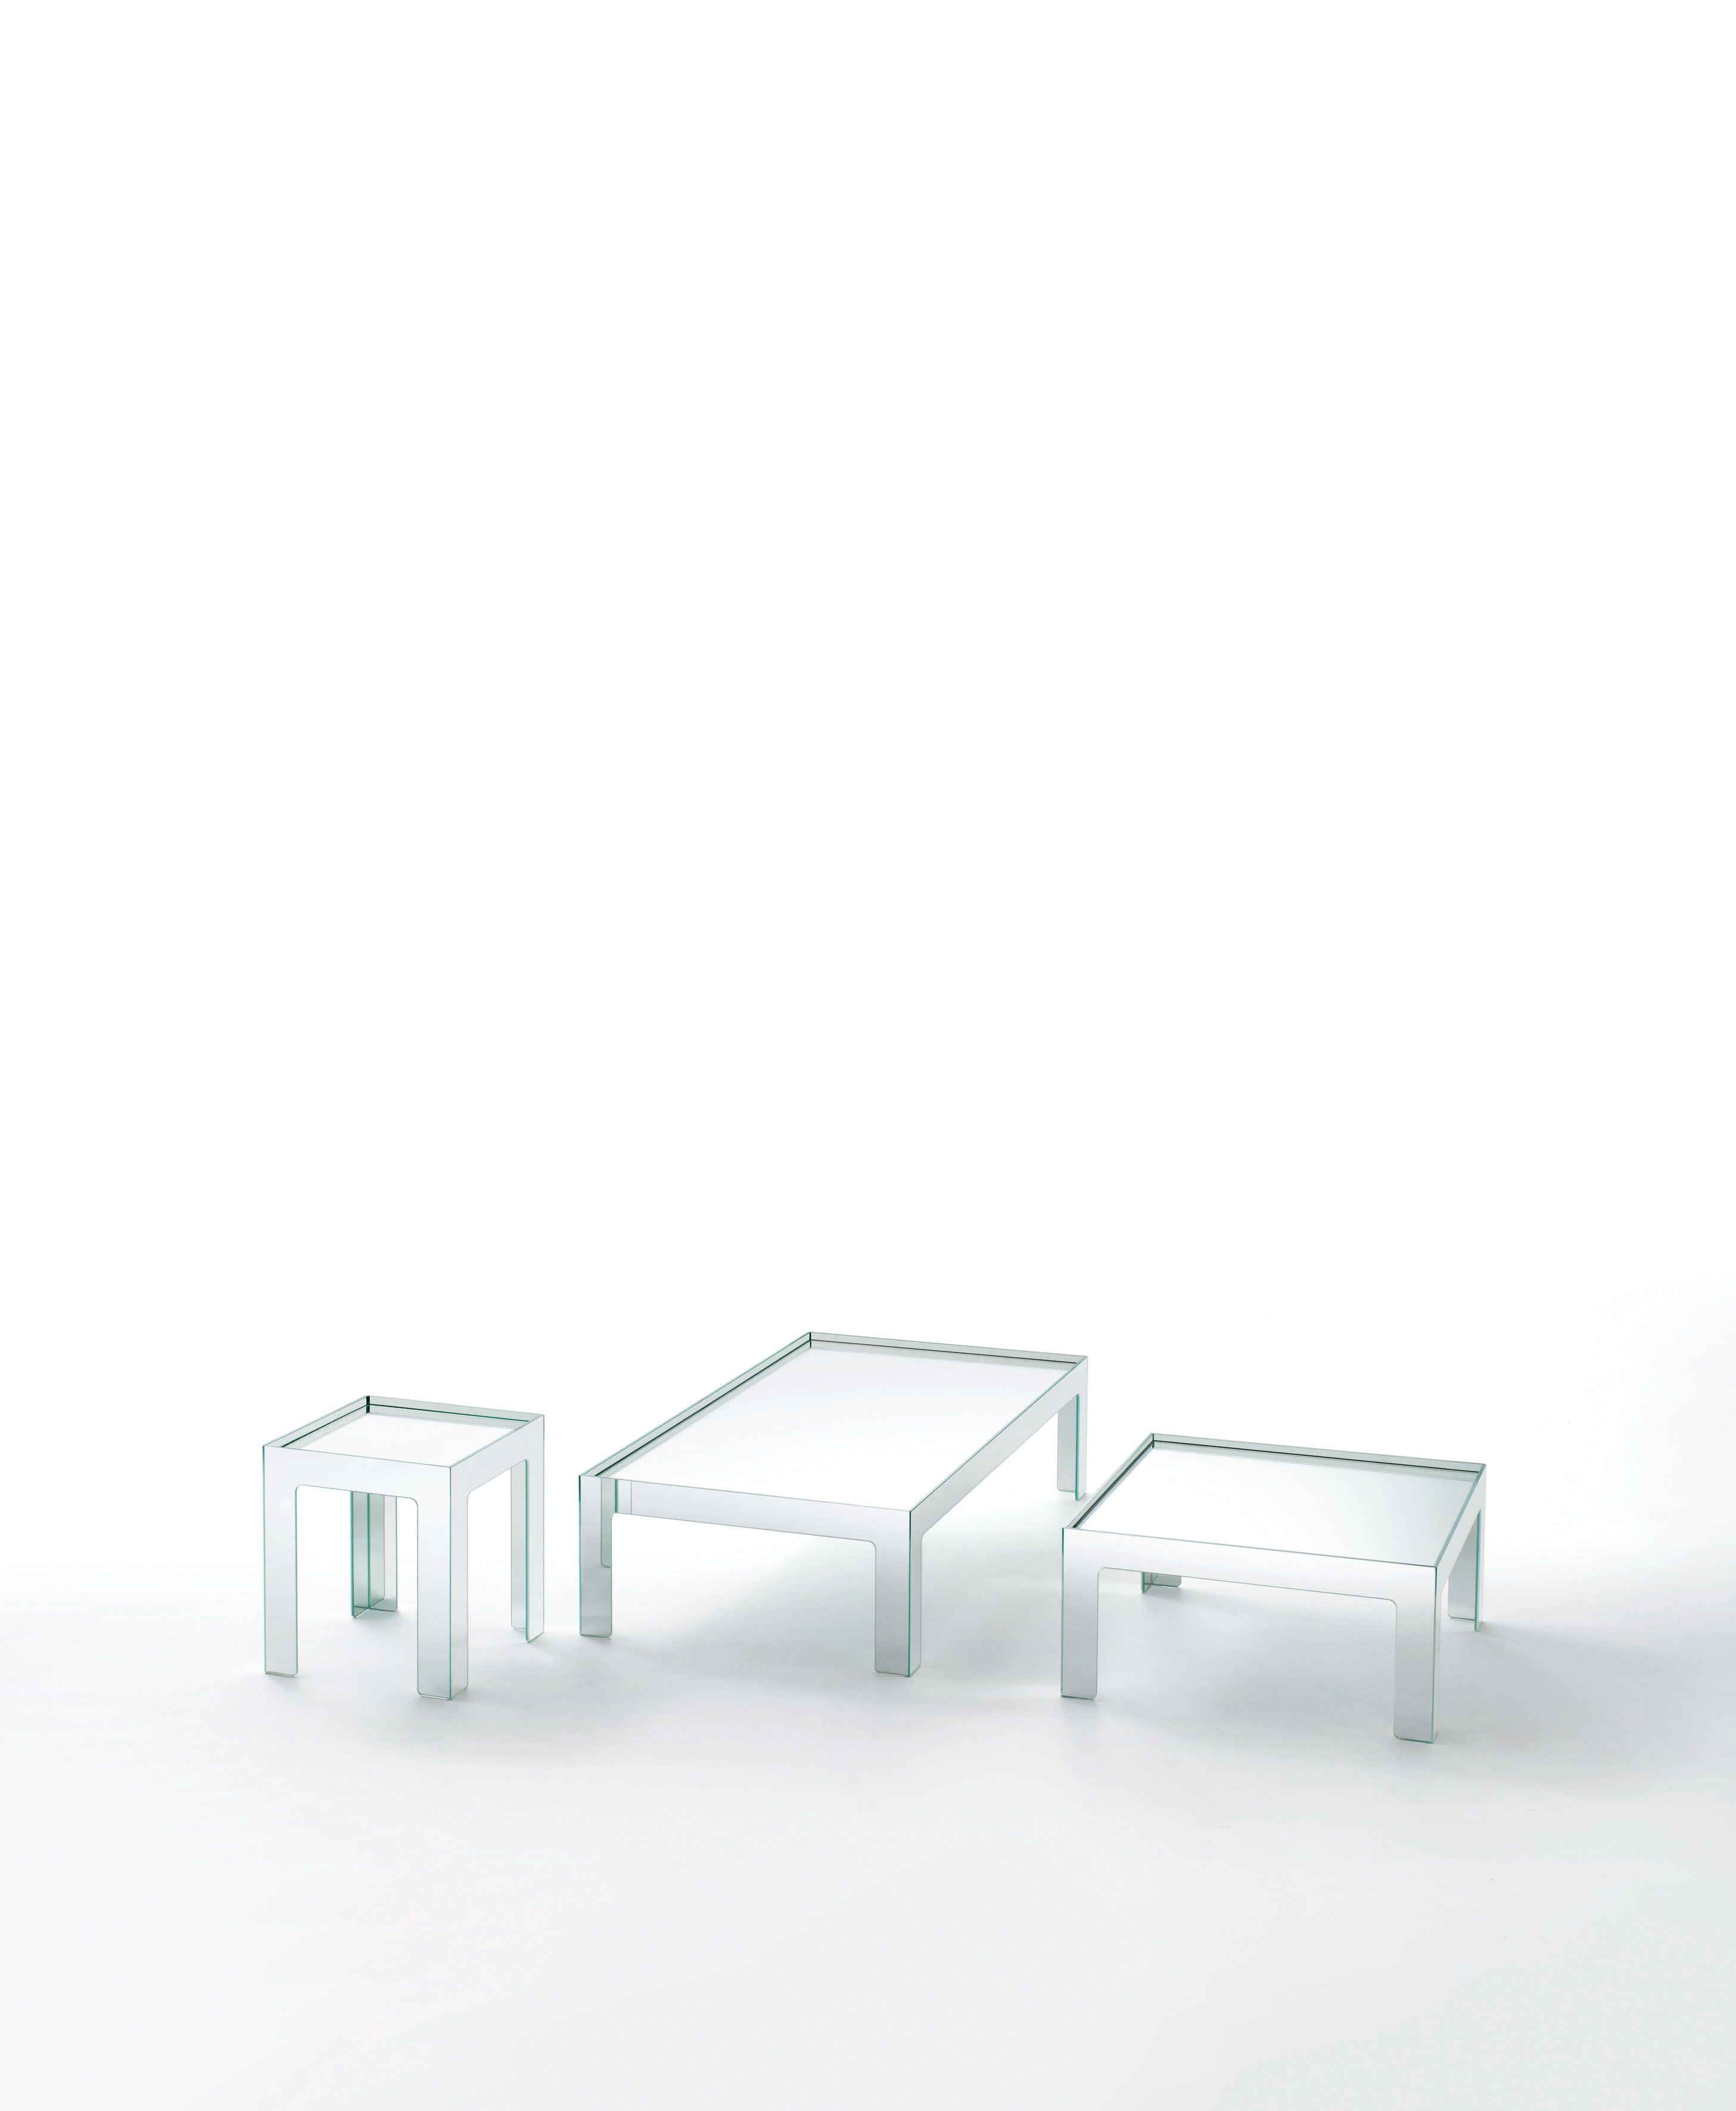 MIRROR MIRROR design Jasper Morrison   Low tables available in different sizes, whose base is obtained by gluing 45° water jet cut laminated double faced mirror slabs. The mirror top rests lower down within the base frame, so as to be contained by an upstand profile.